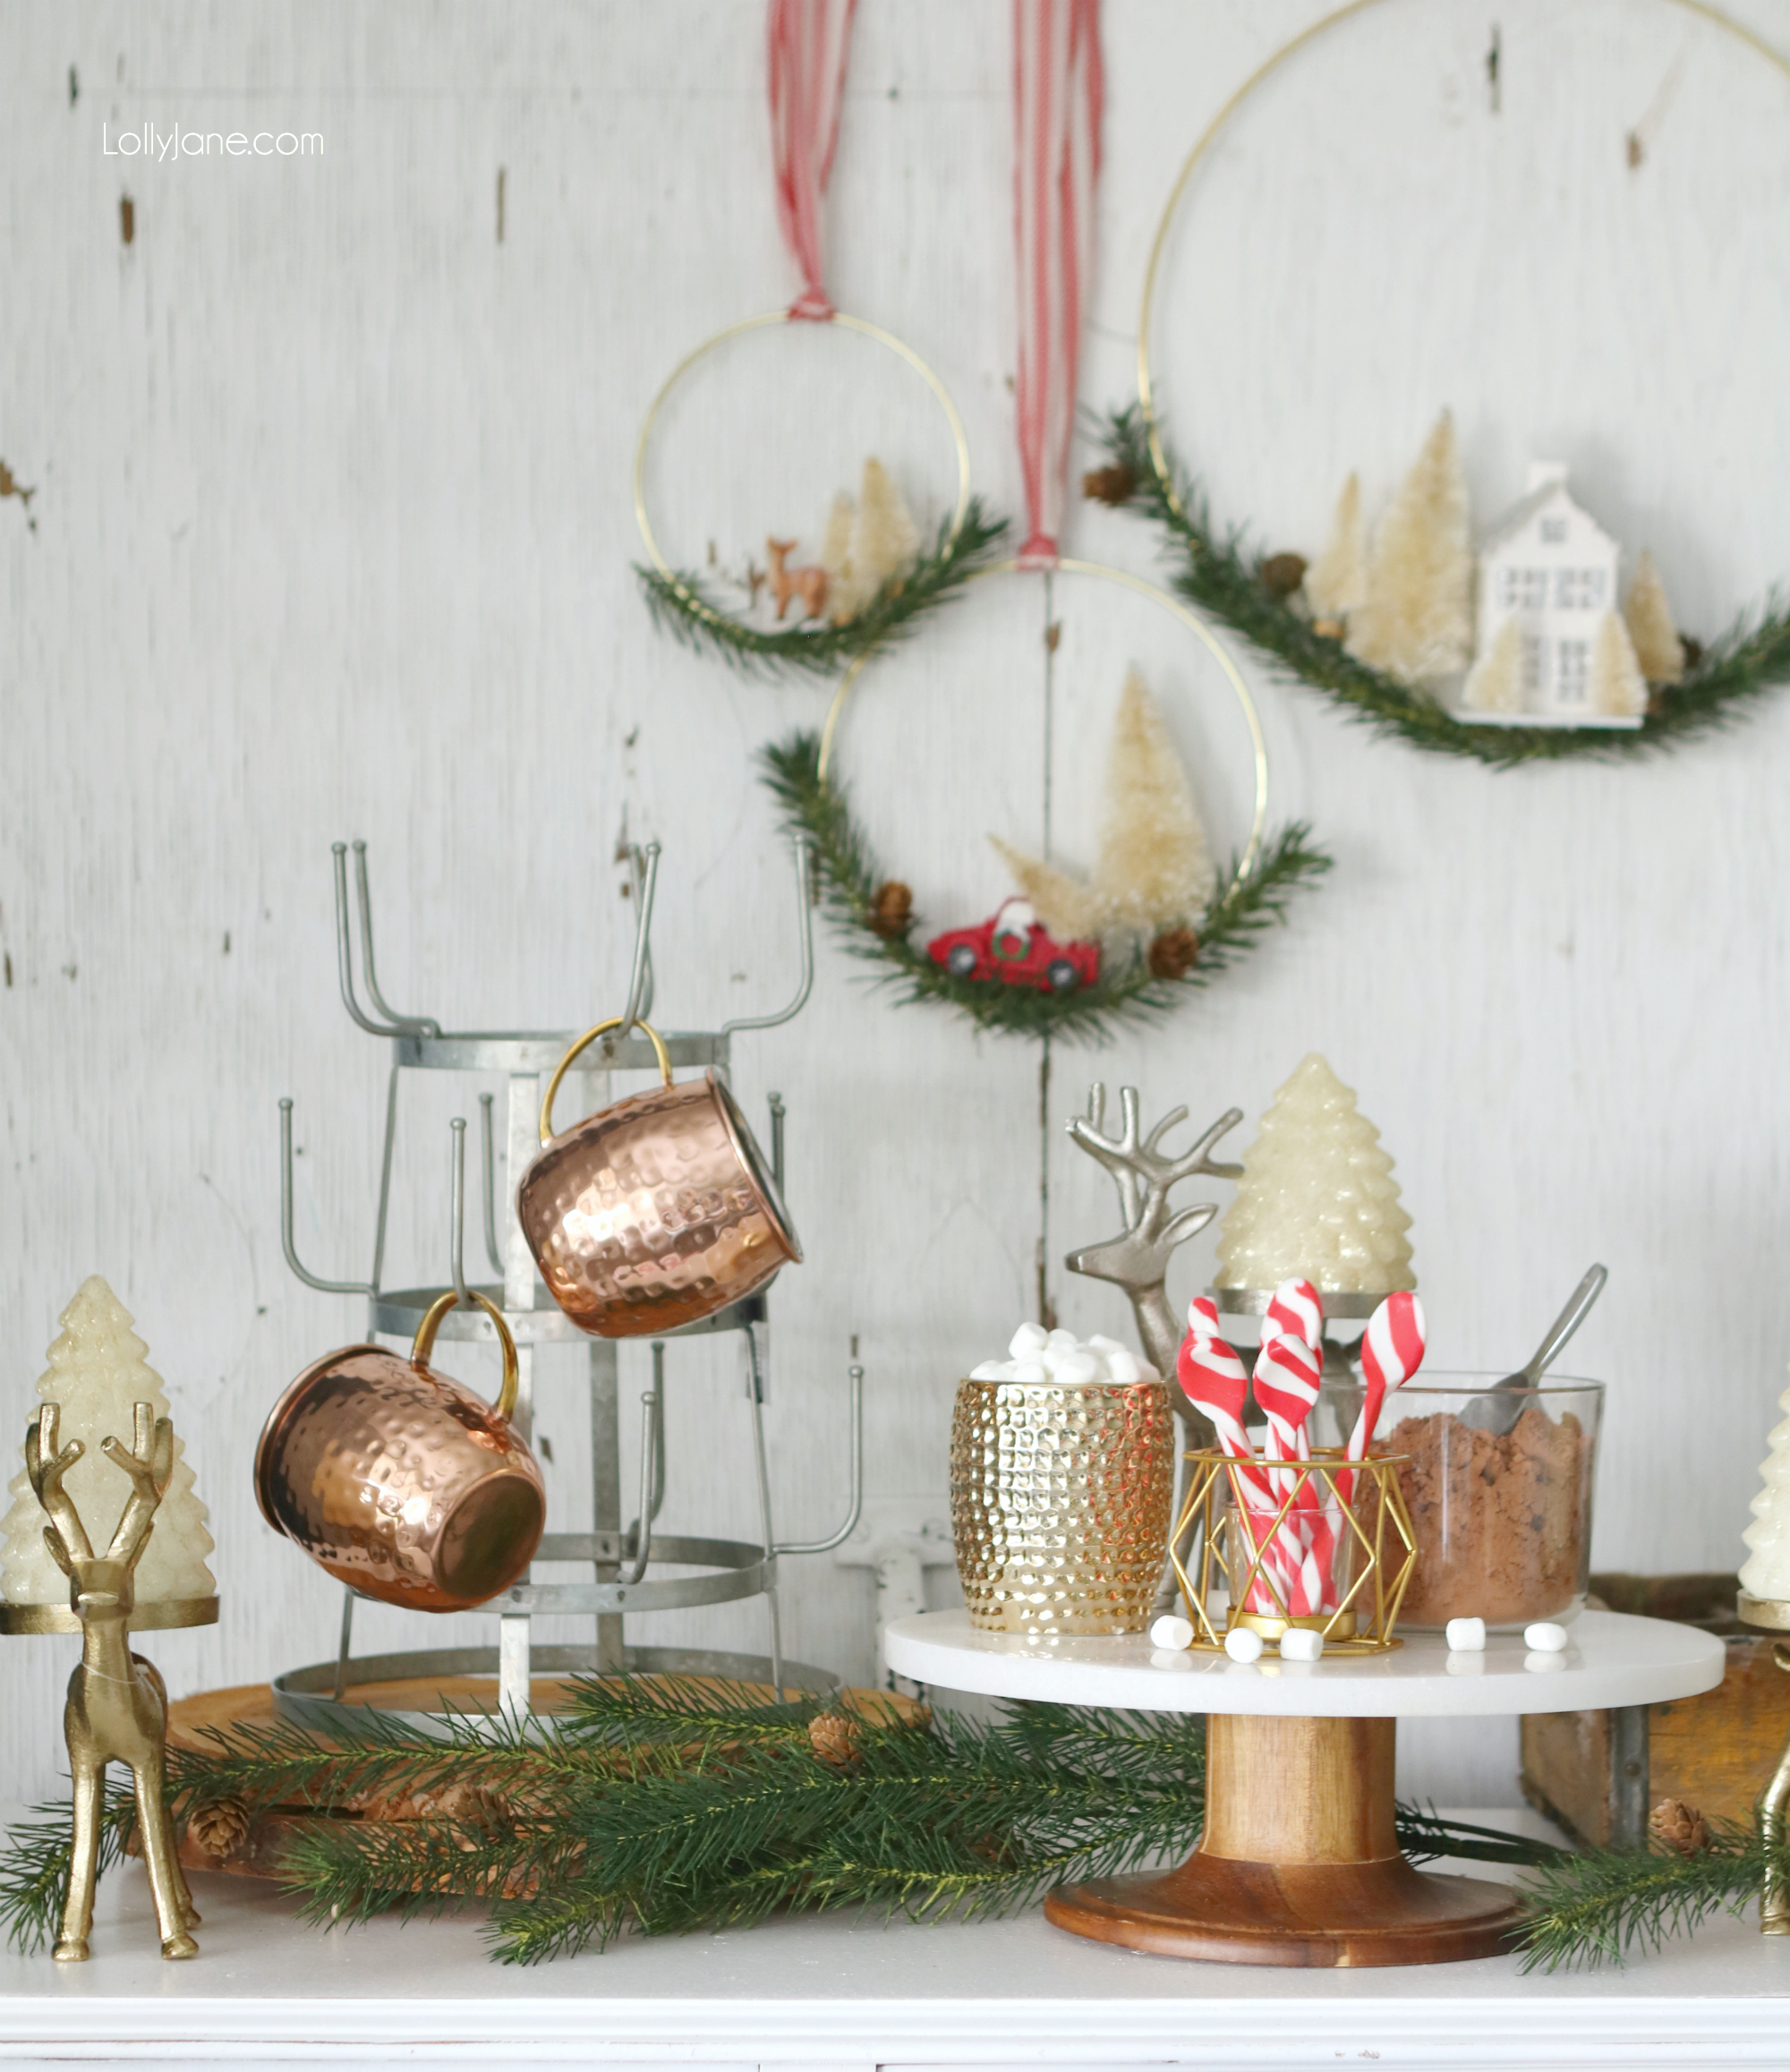 Easy Rustic Glam Hot Chocolate Station, perfect station to grab and go! Love this setup to leave up all season!